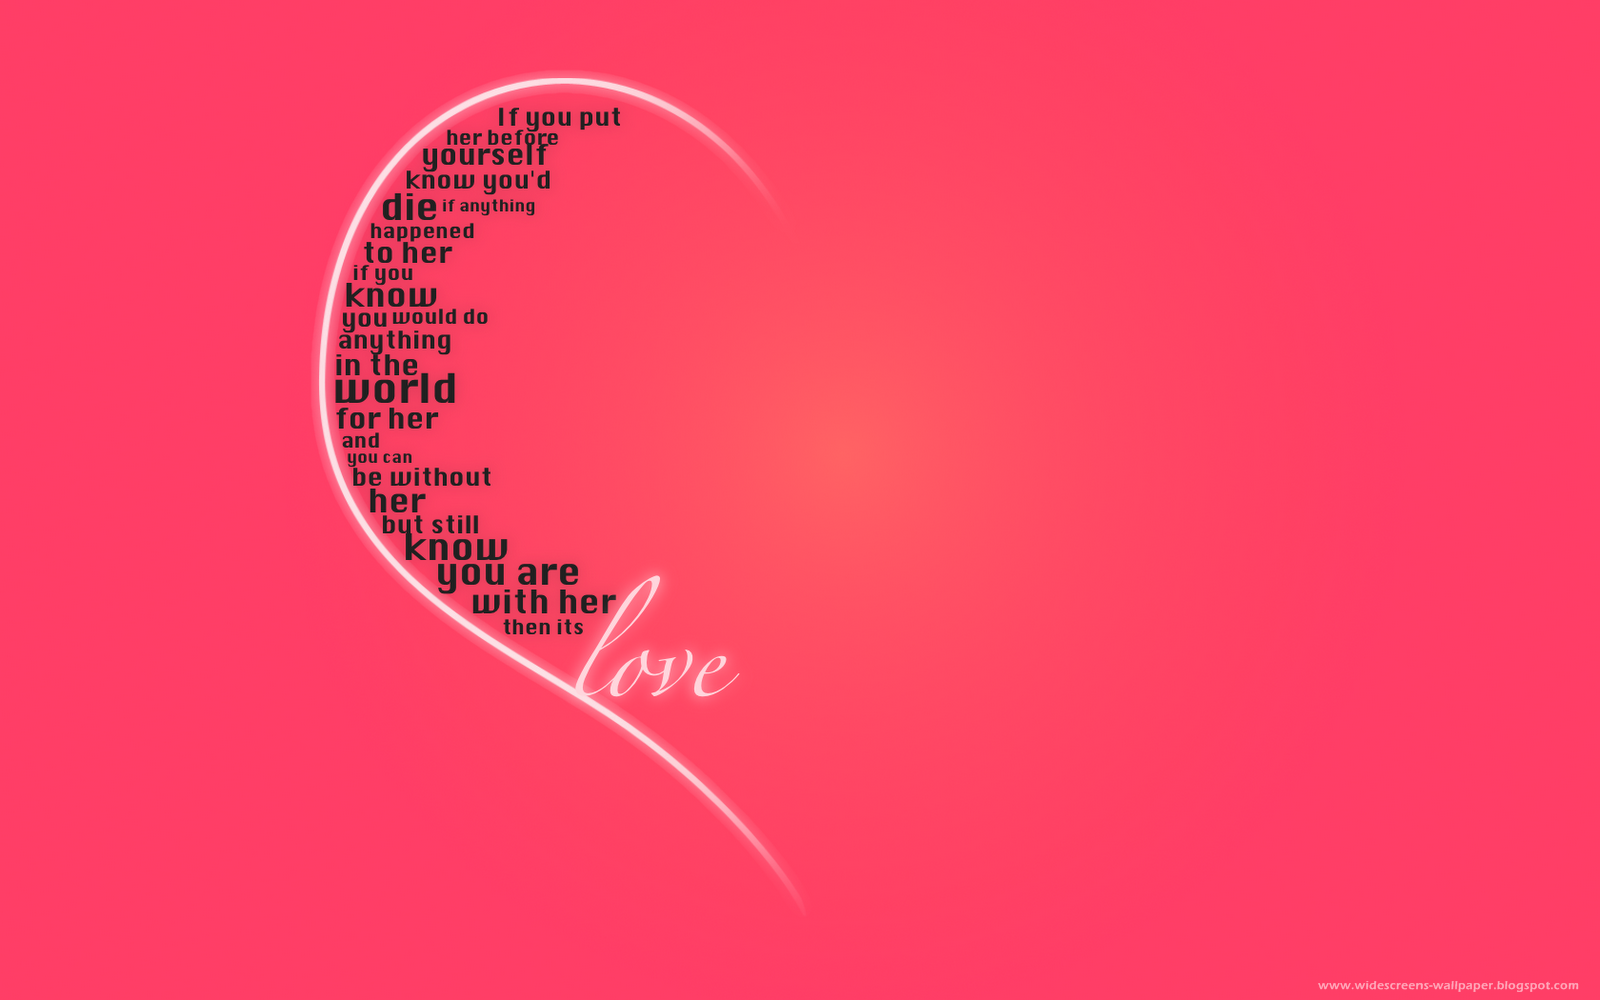 Wallpaper Love Forever Quotes : Wallpaper collection For Your computer and Mobile Phones: New Romantic Love Words And Quotations ...